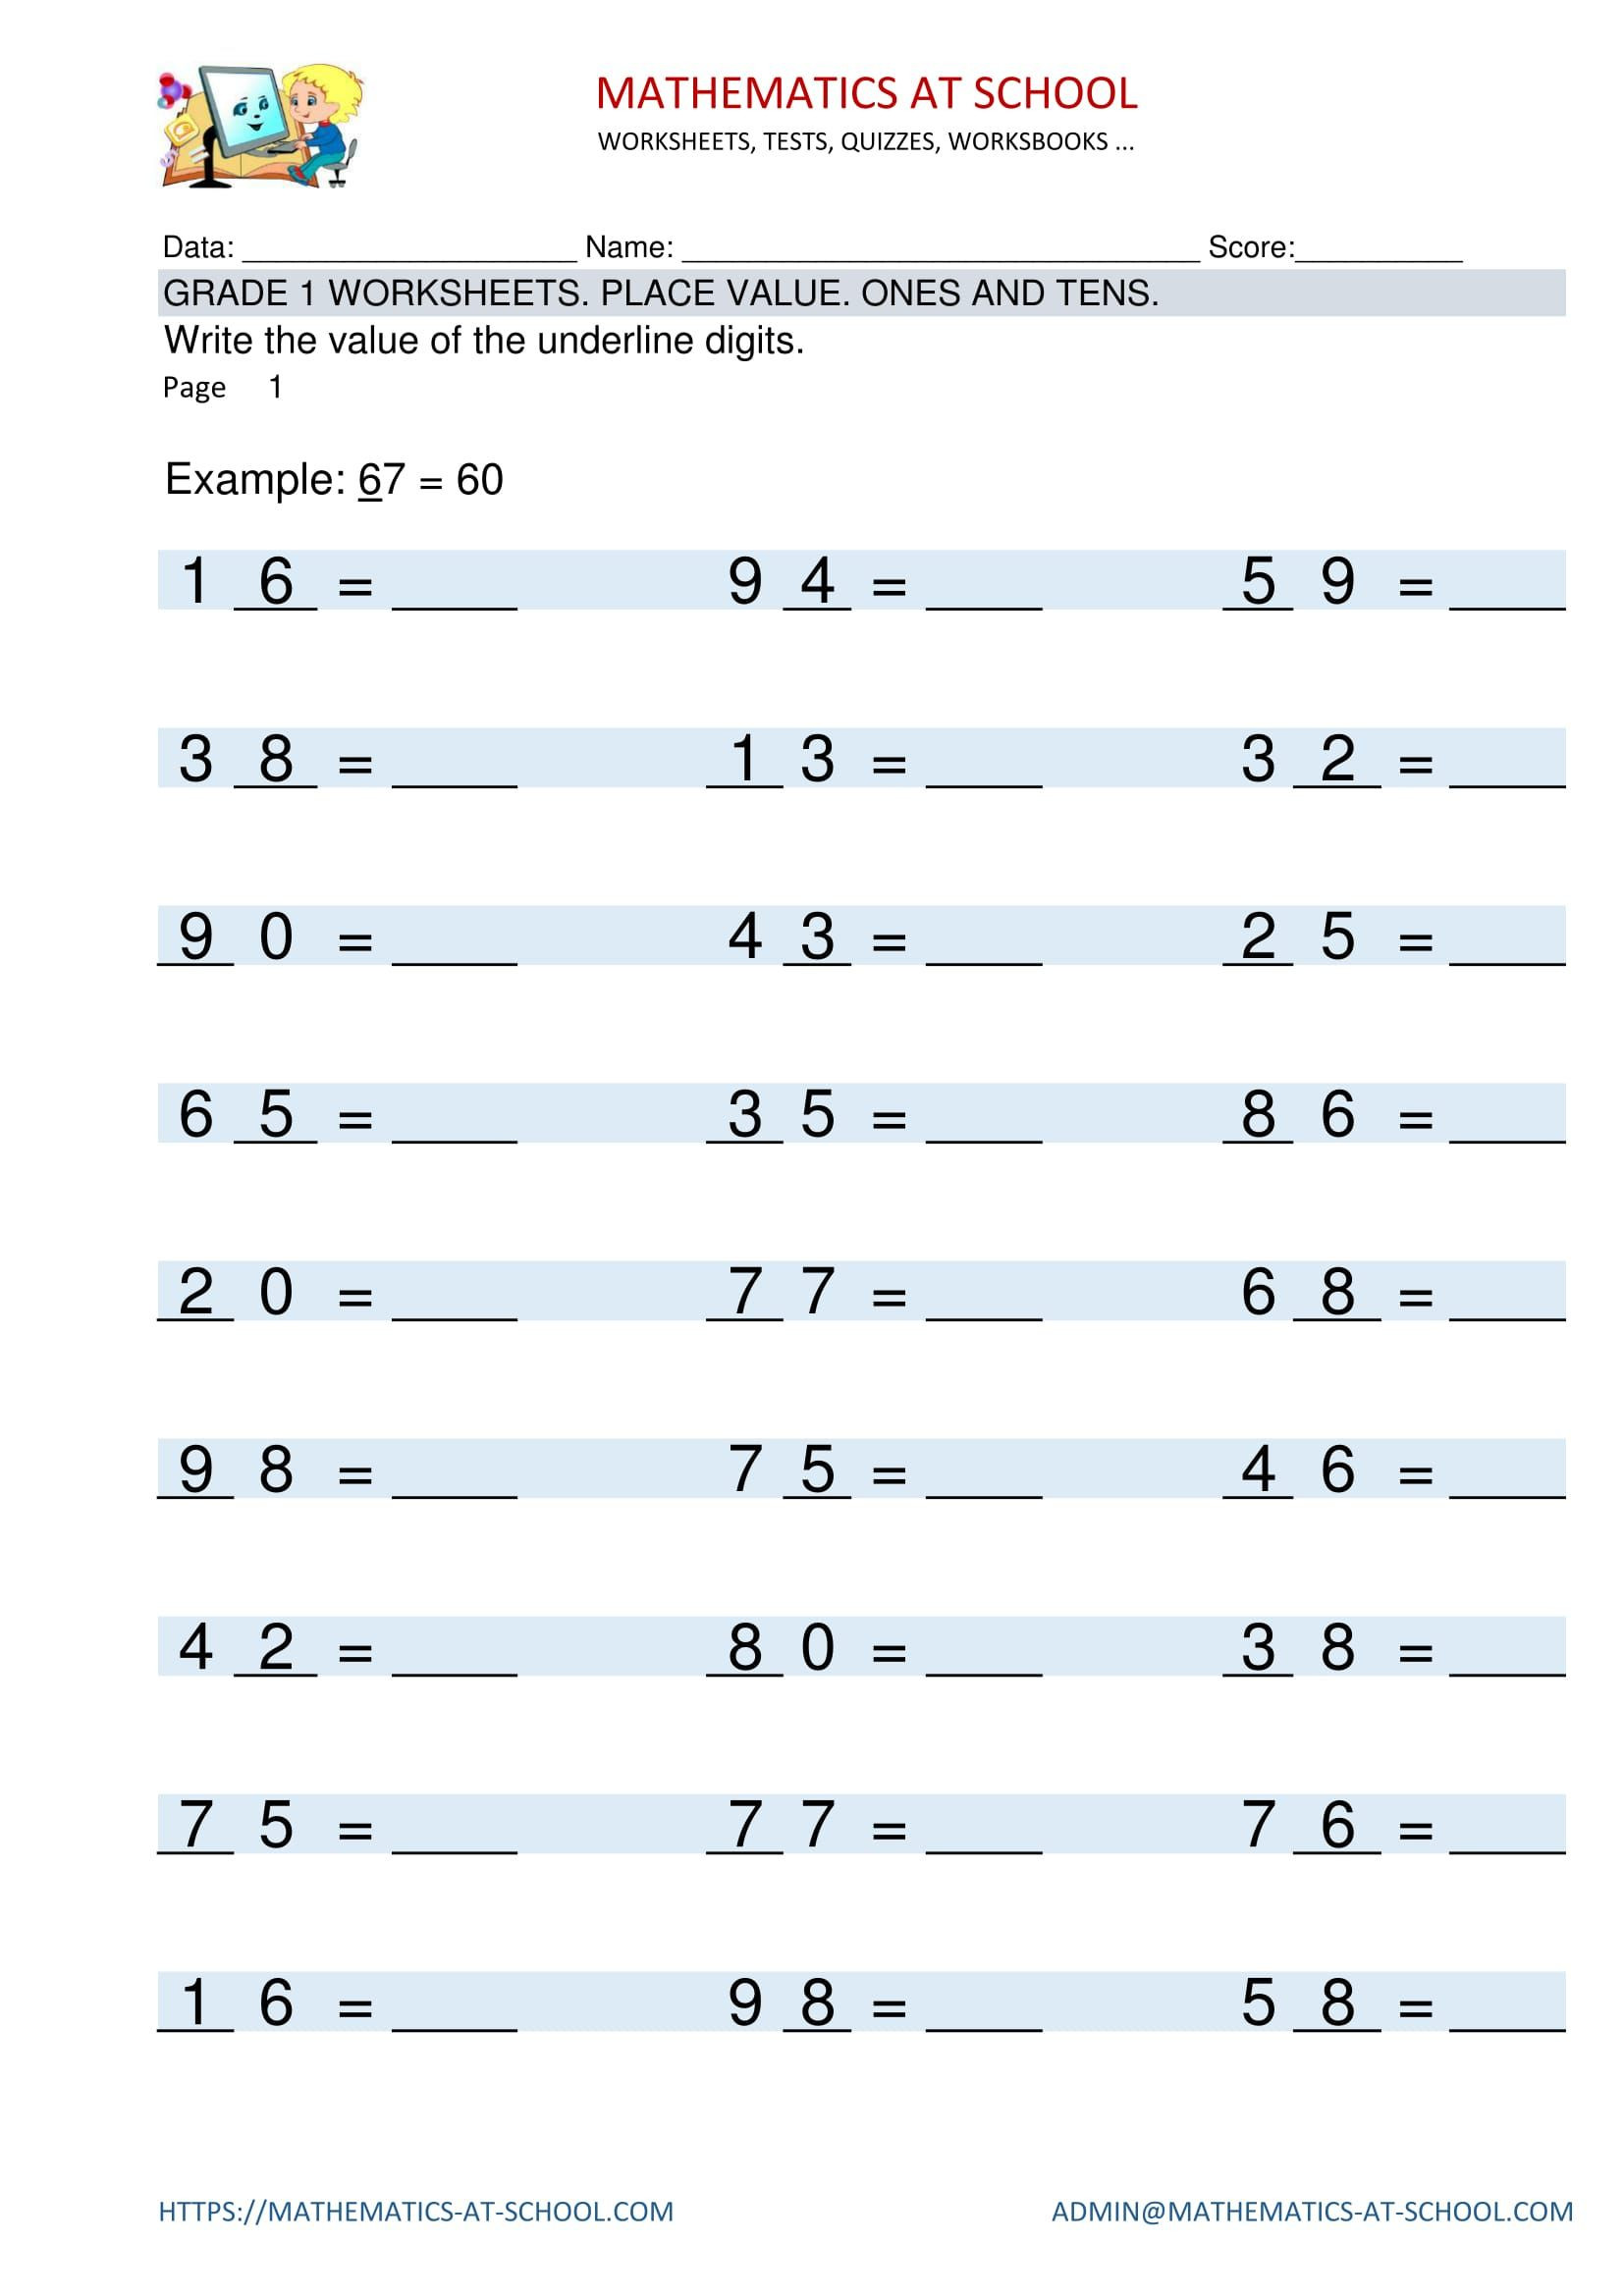 Math Place Value Worksheets Grade Worksheets Place Value Identifying Digits Free